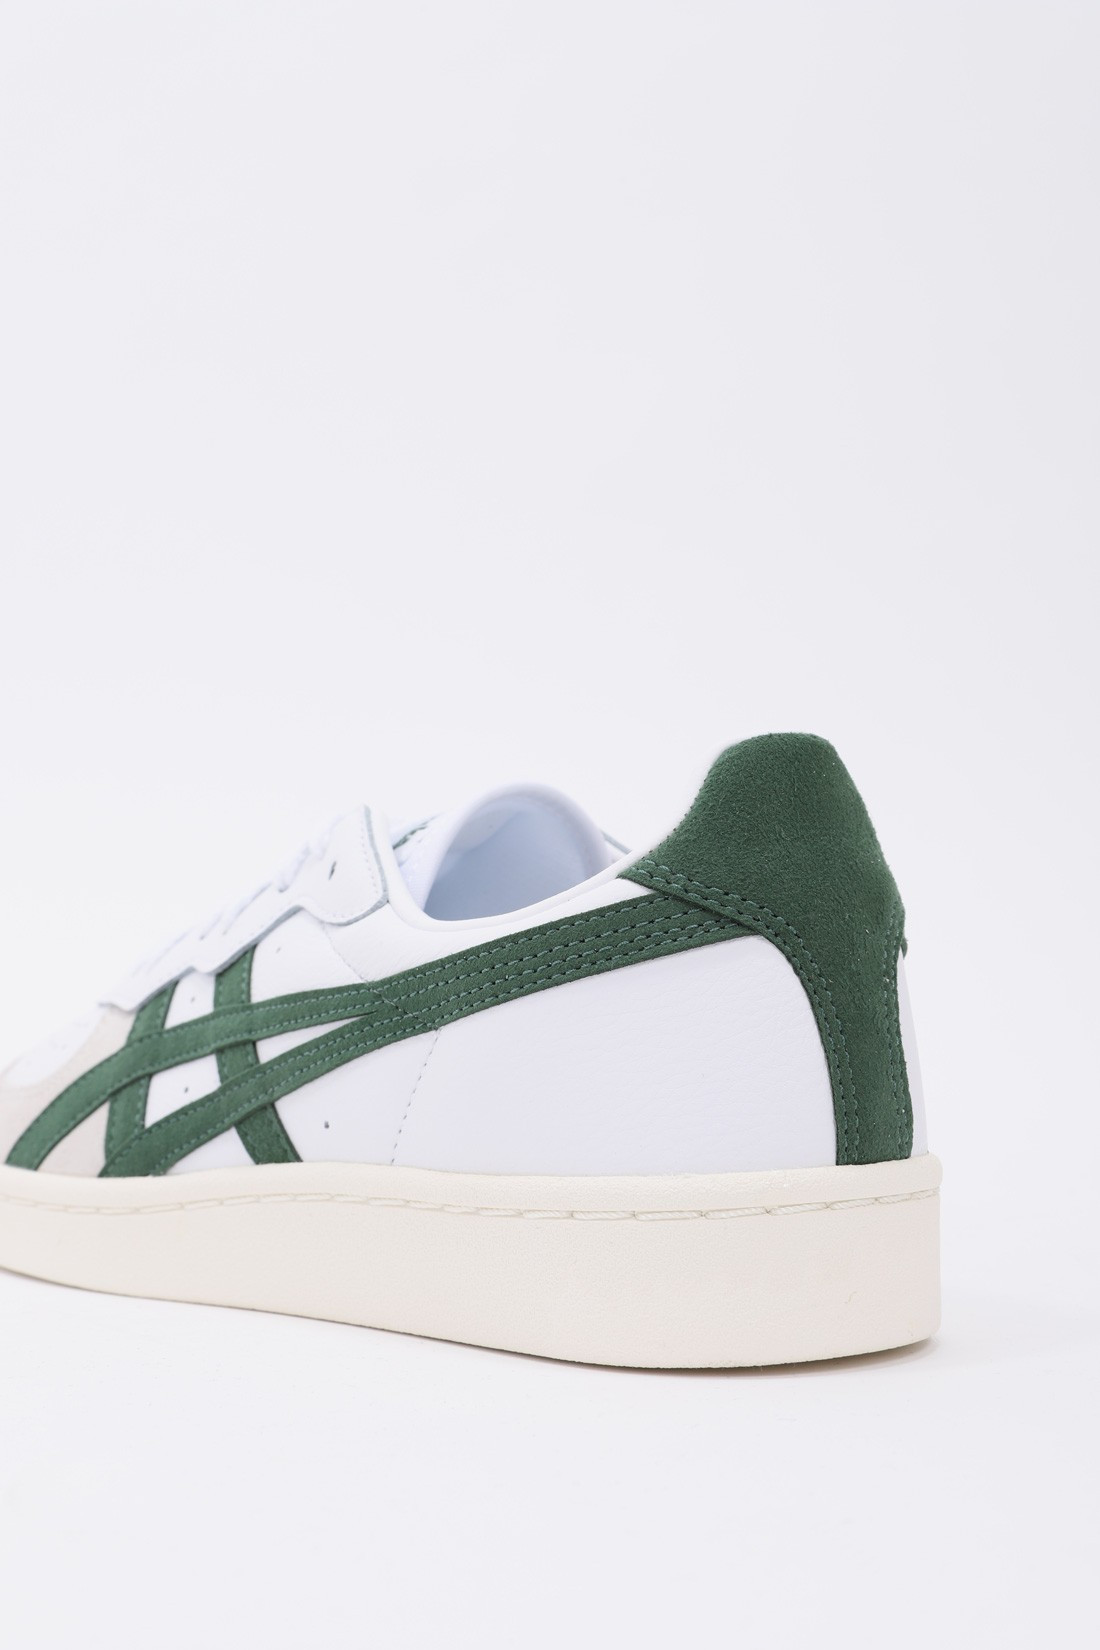 sale retailer da58e 32cc2 Onitsuka tiger gsm White hunter green